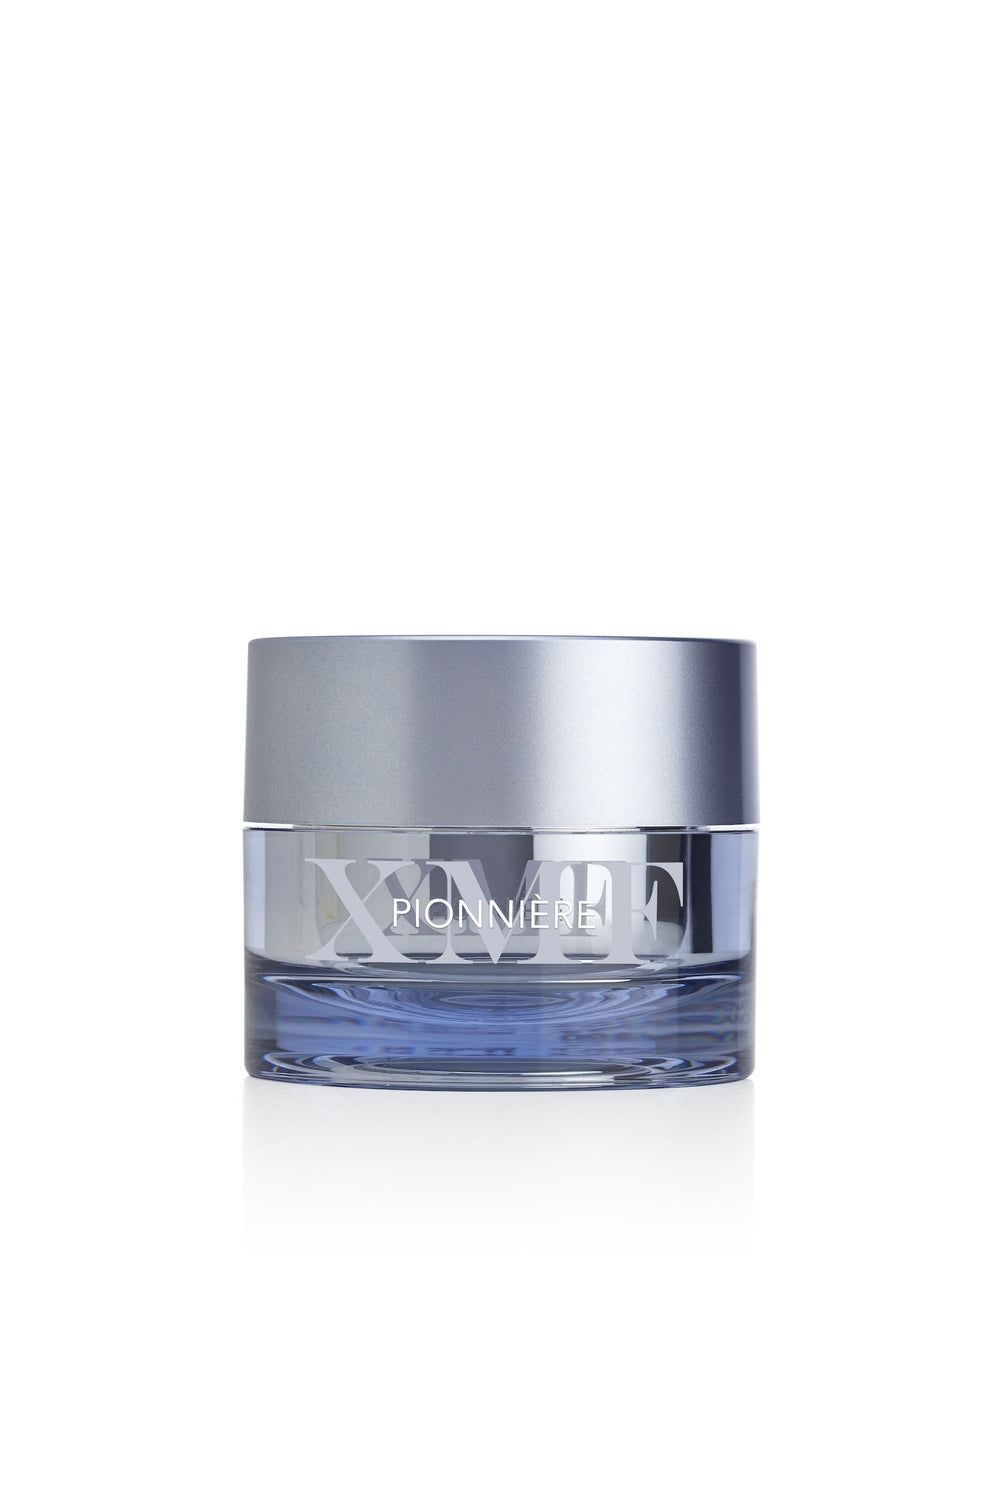 PIONNIERE XMF - Perfection Youth Rich Cream - 50ml